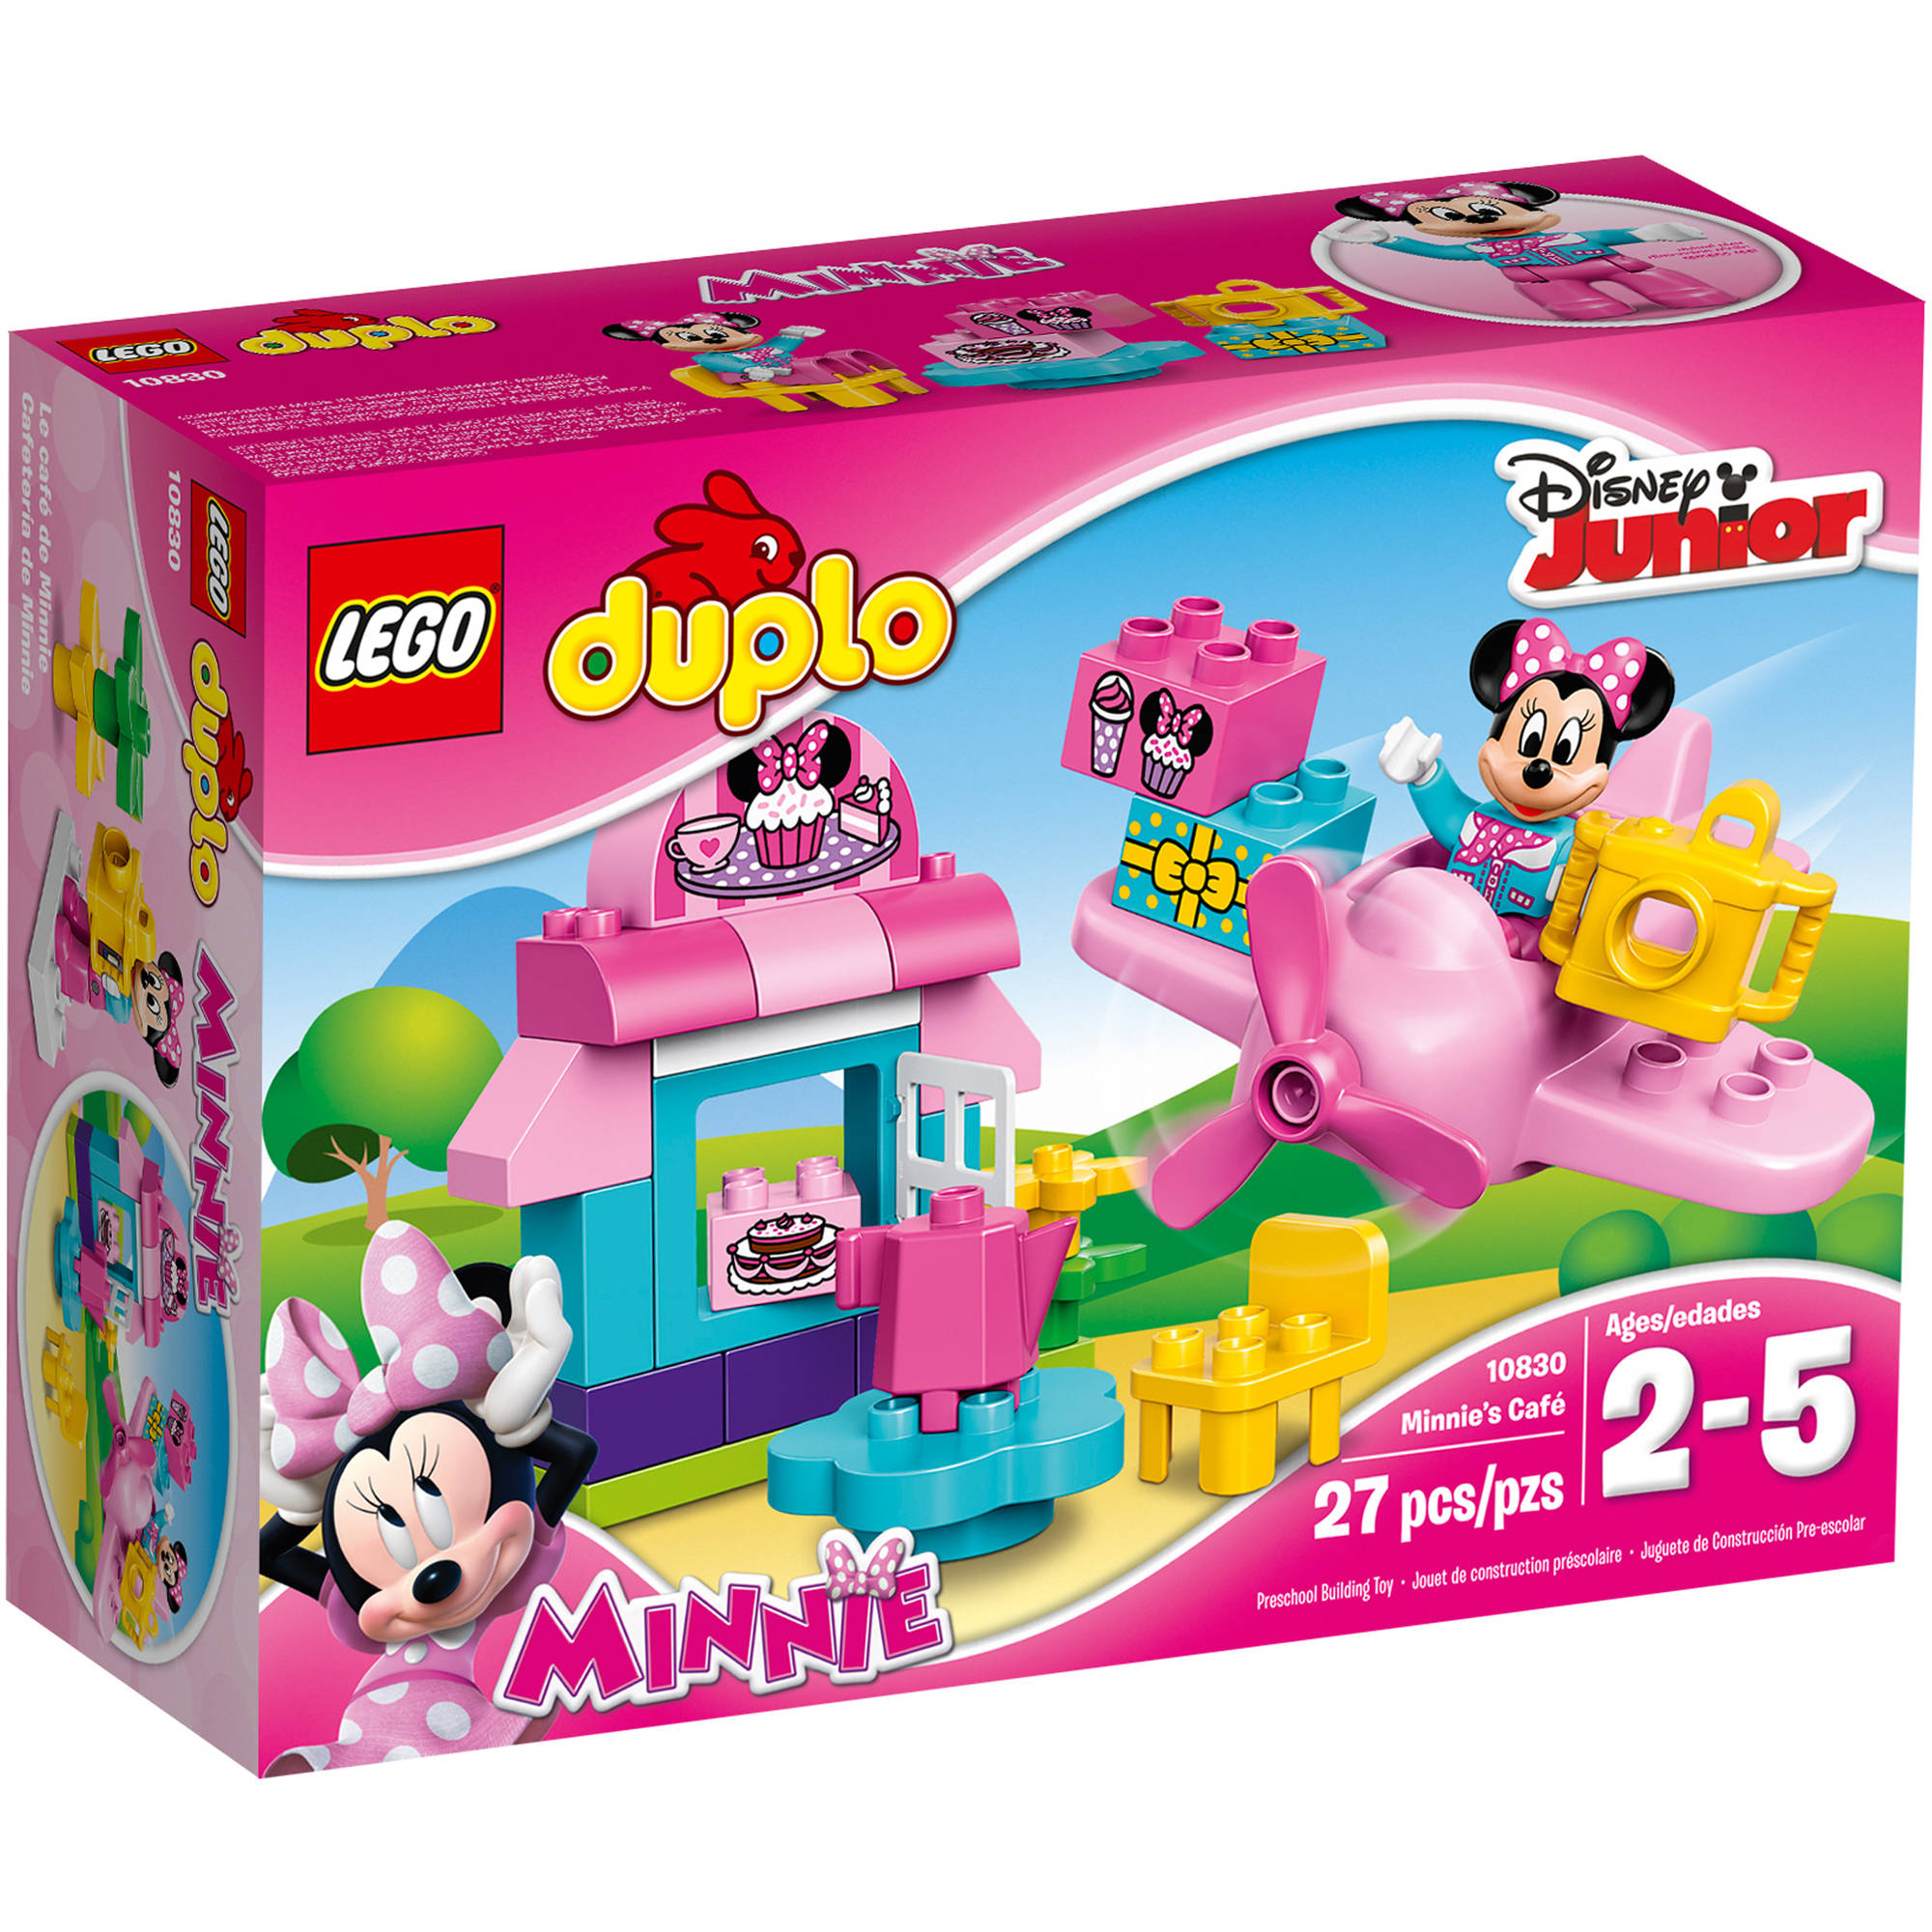 LEGO DUPLO Disney Minnie's Cafe, 10830